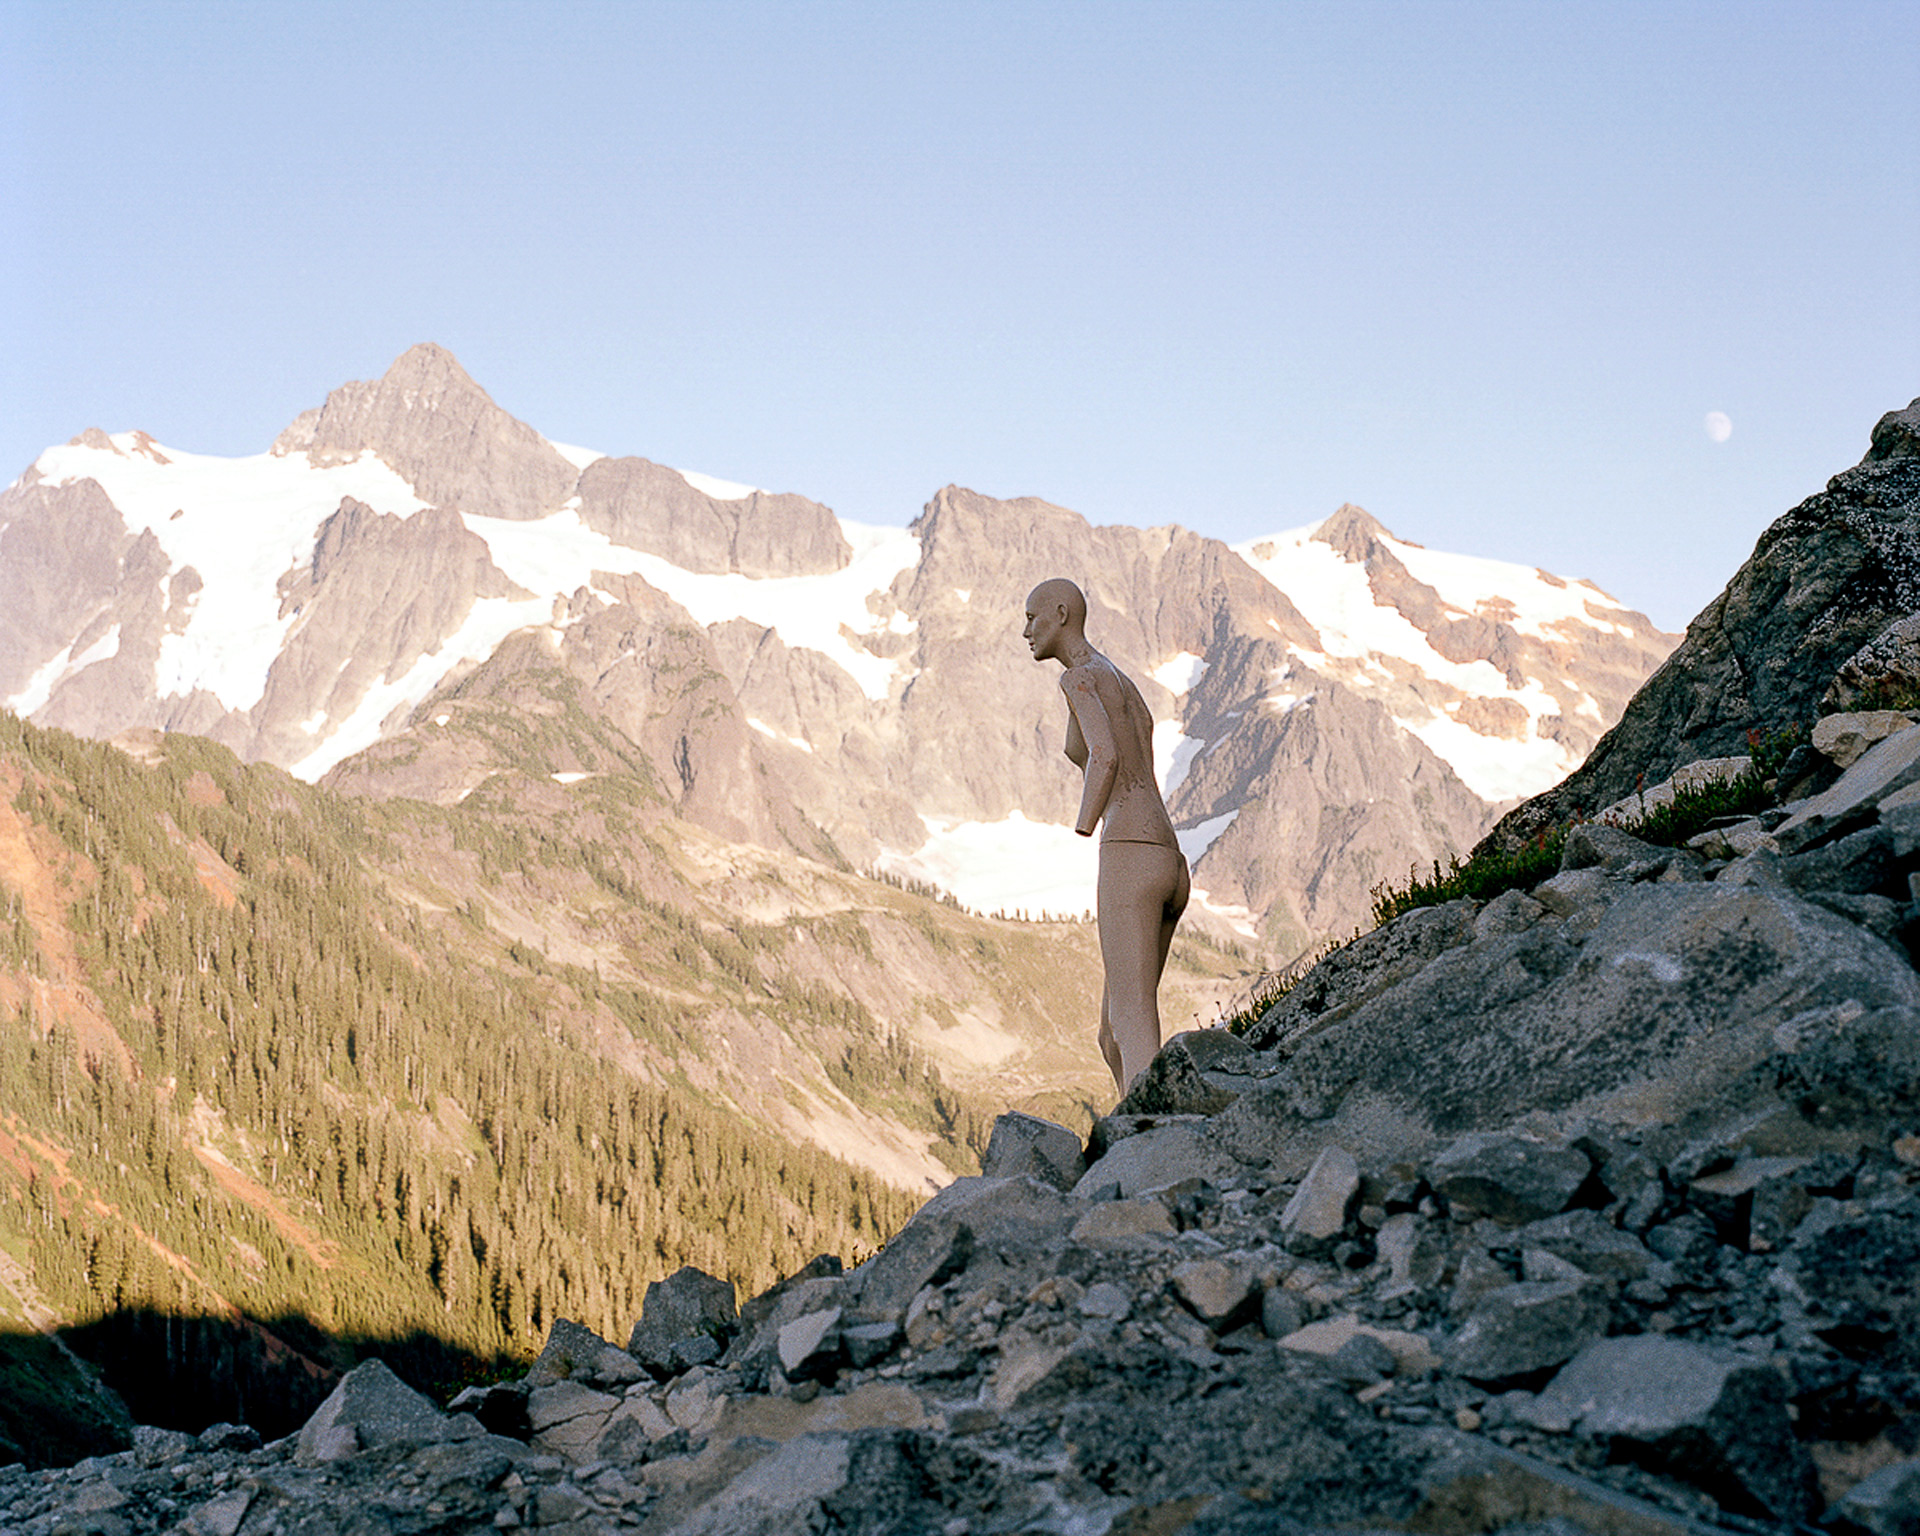 Nude in national park images 62